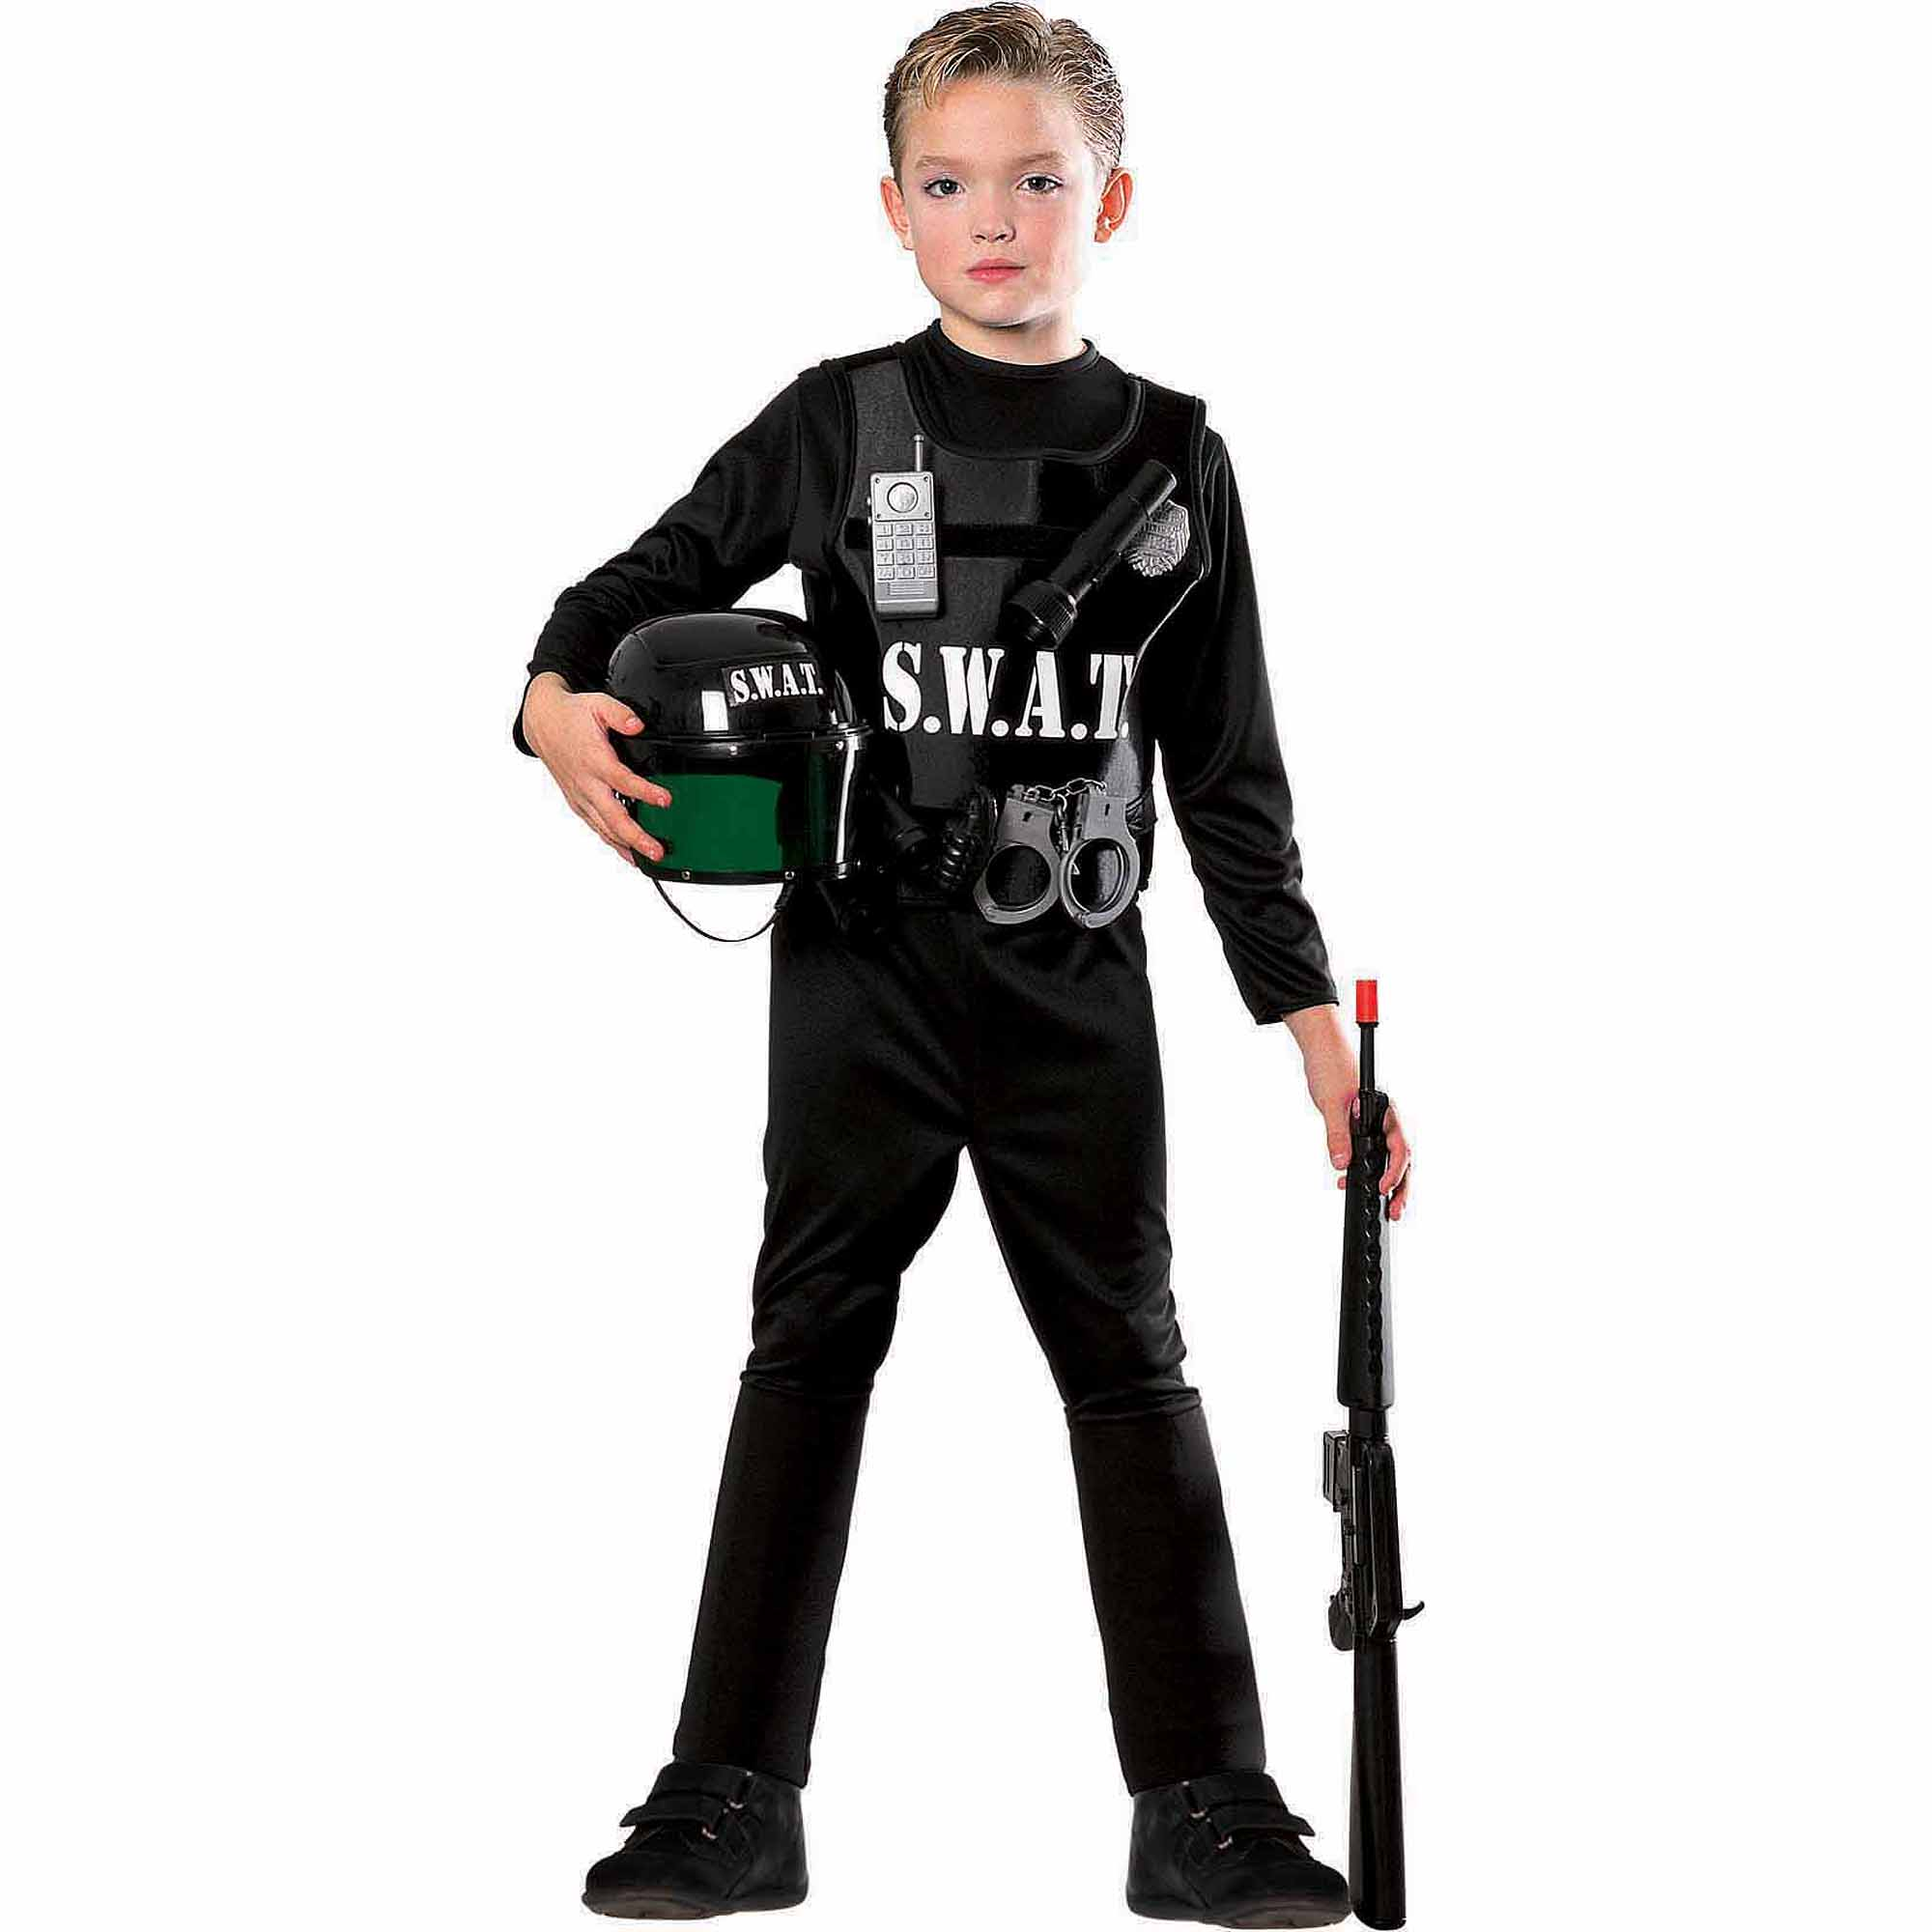 sc 1 st  Walmart.com & S.W.A.T. Team Child Halloween Costume - Walmart.com